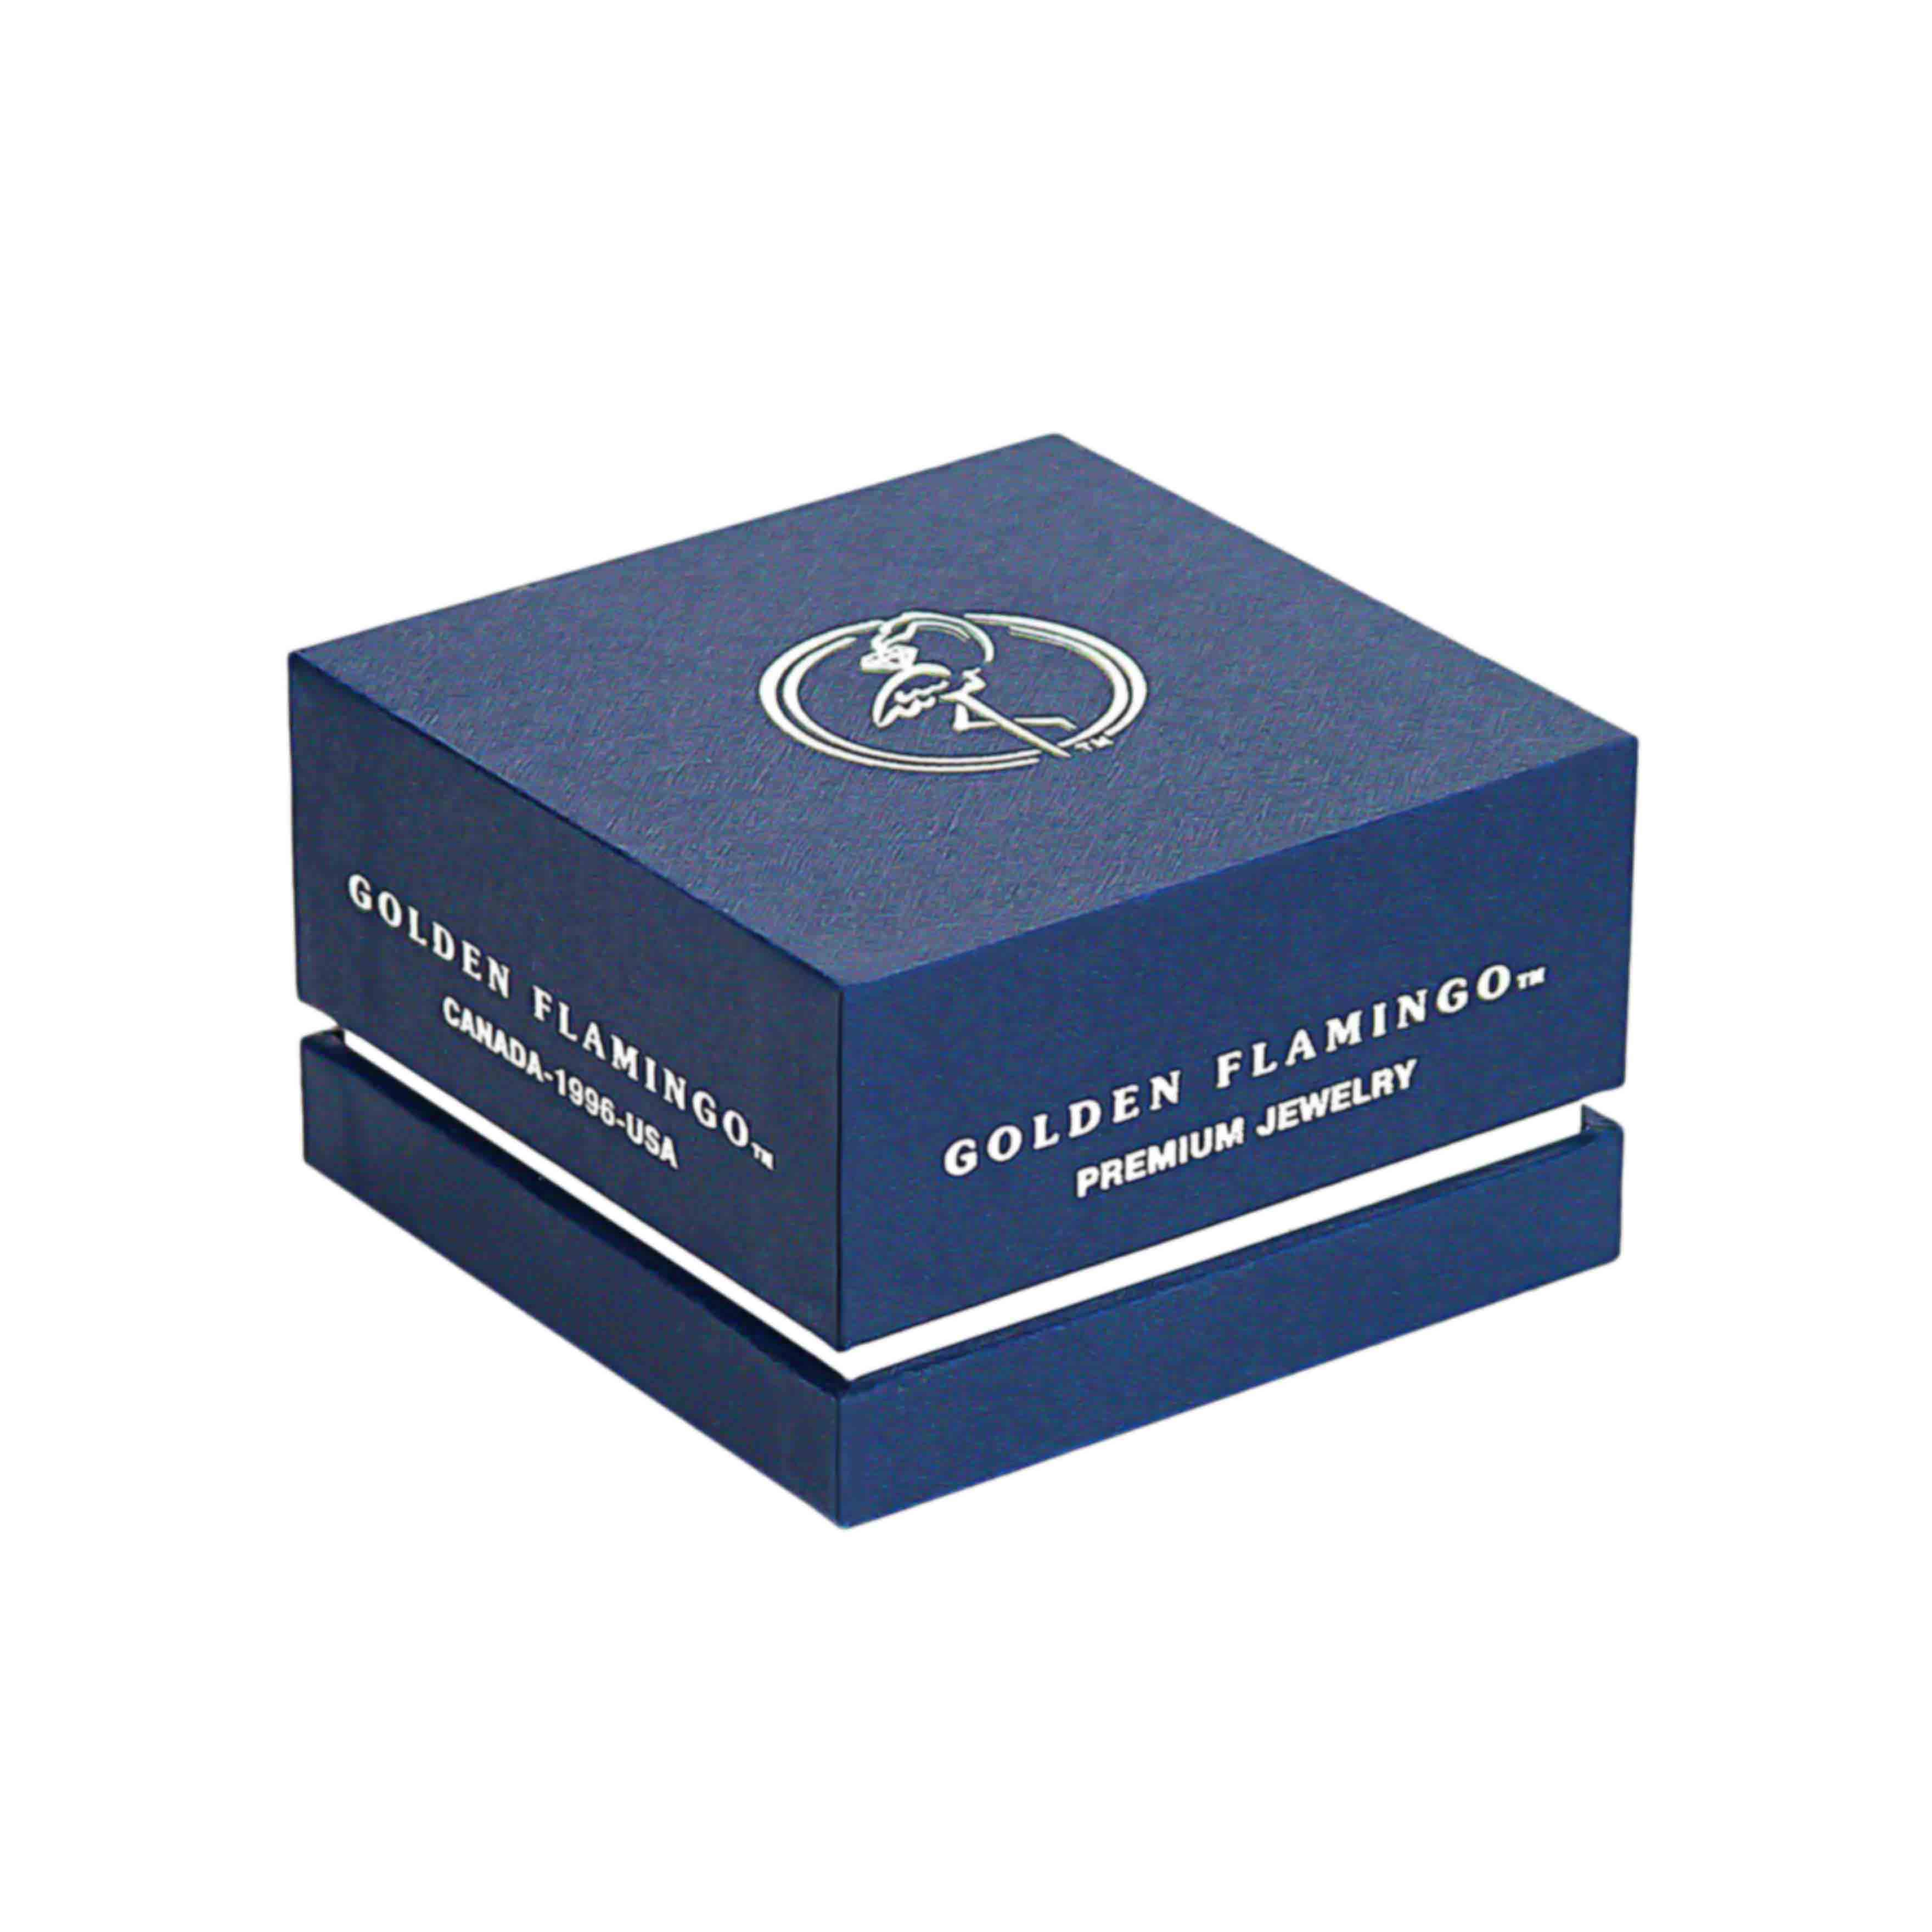 Boutique-quality gift box for gold ring by the Golden Flamingo brand